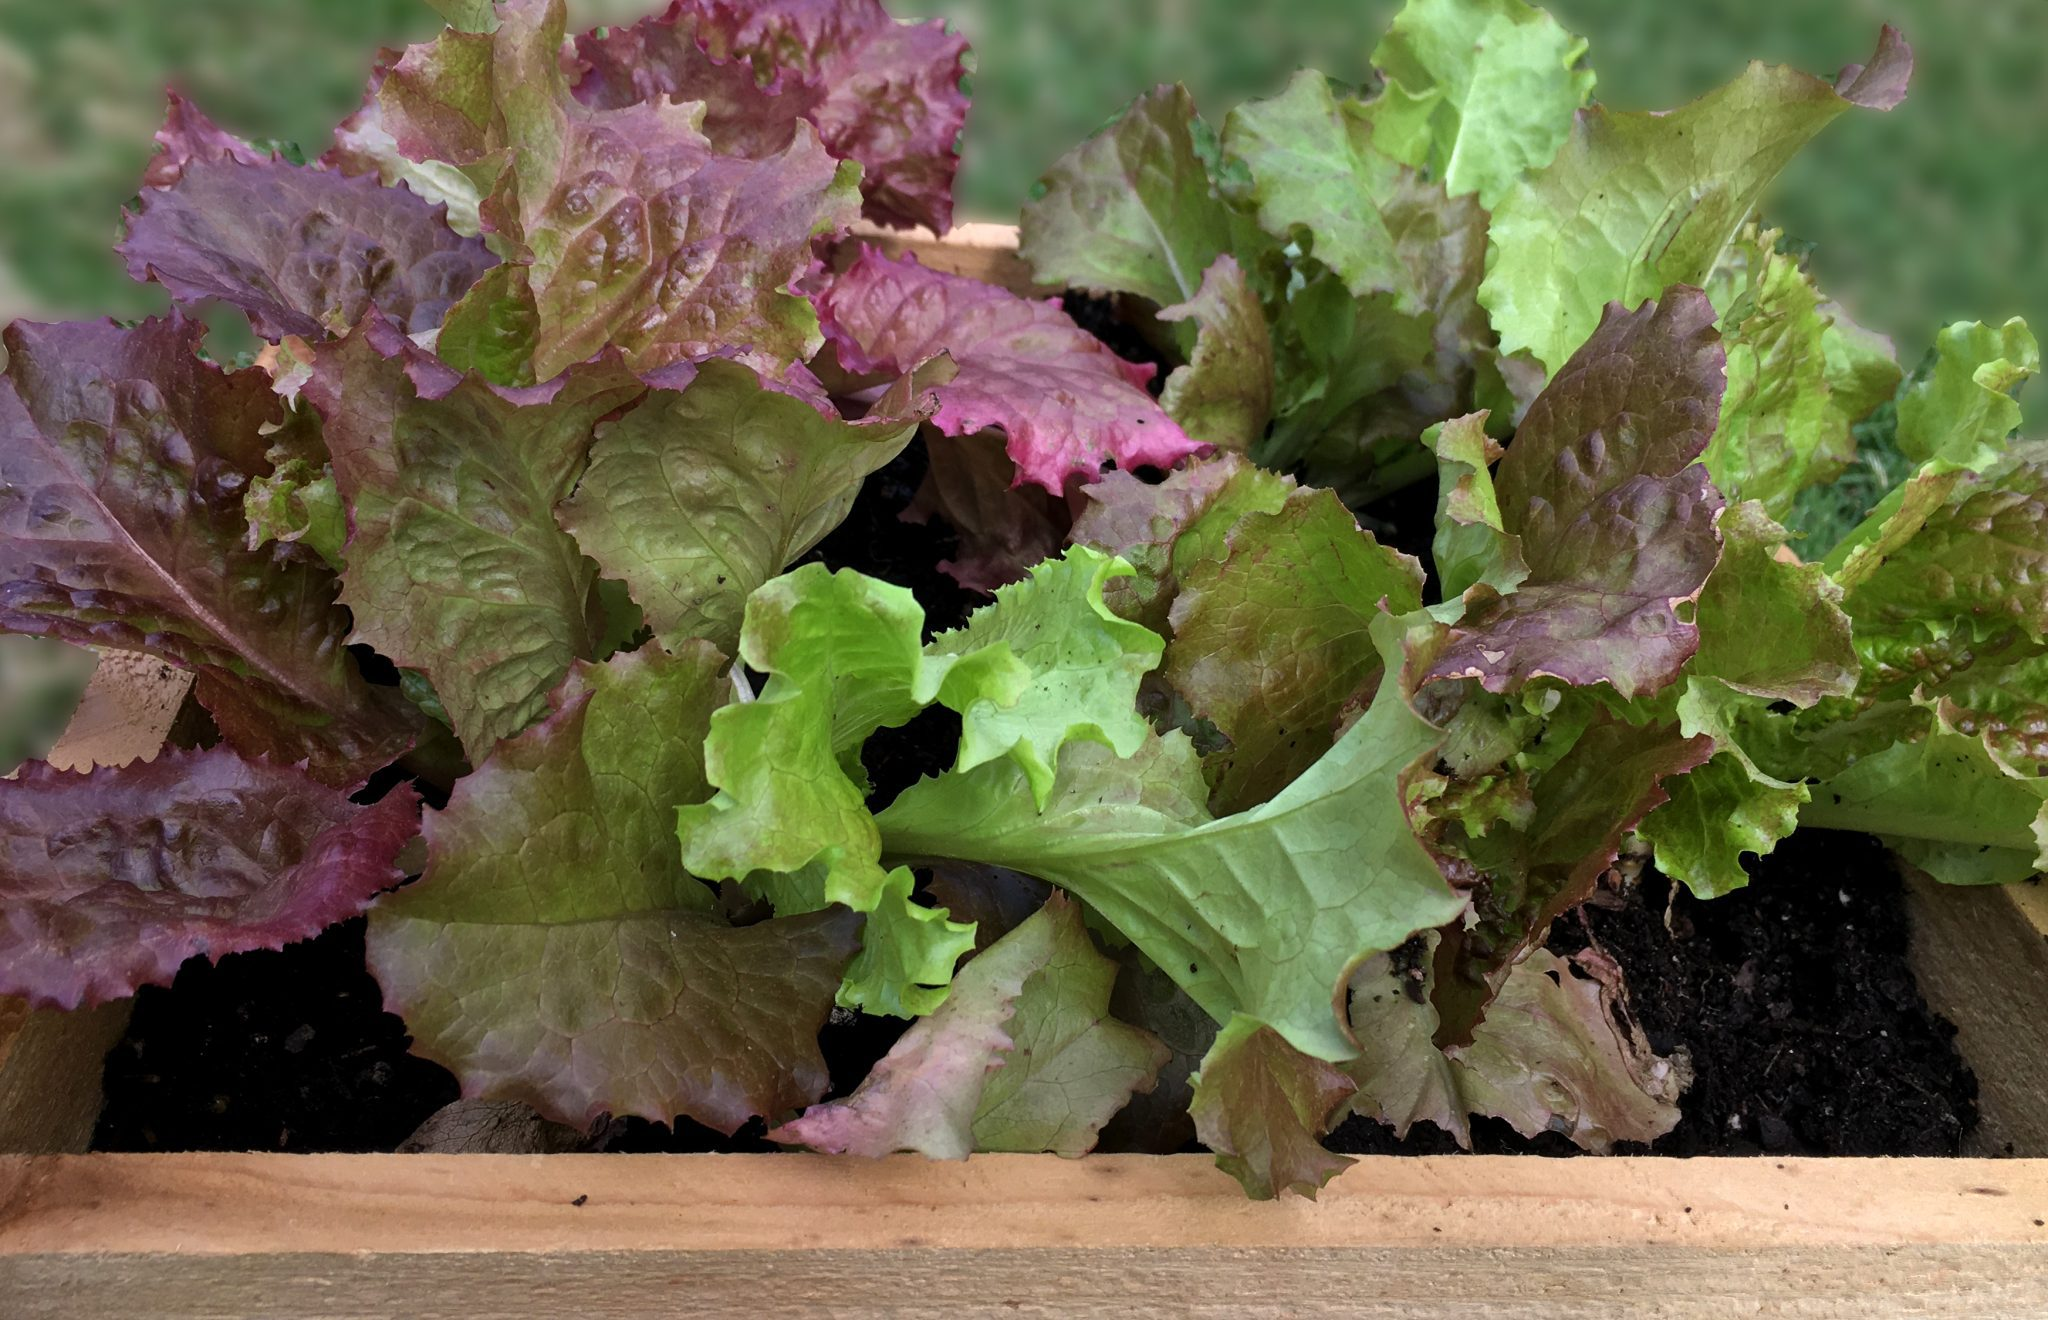 Lettuce growing in a one foot by one foot raised bed garden box.